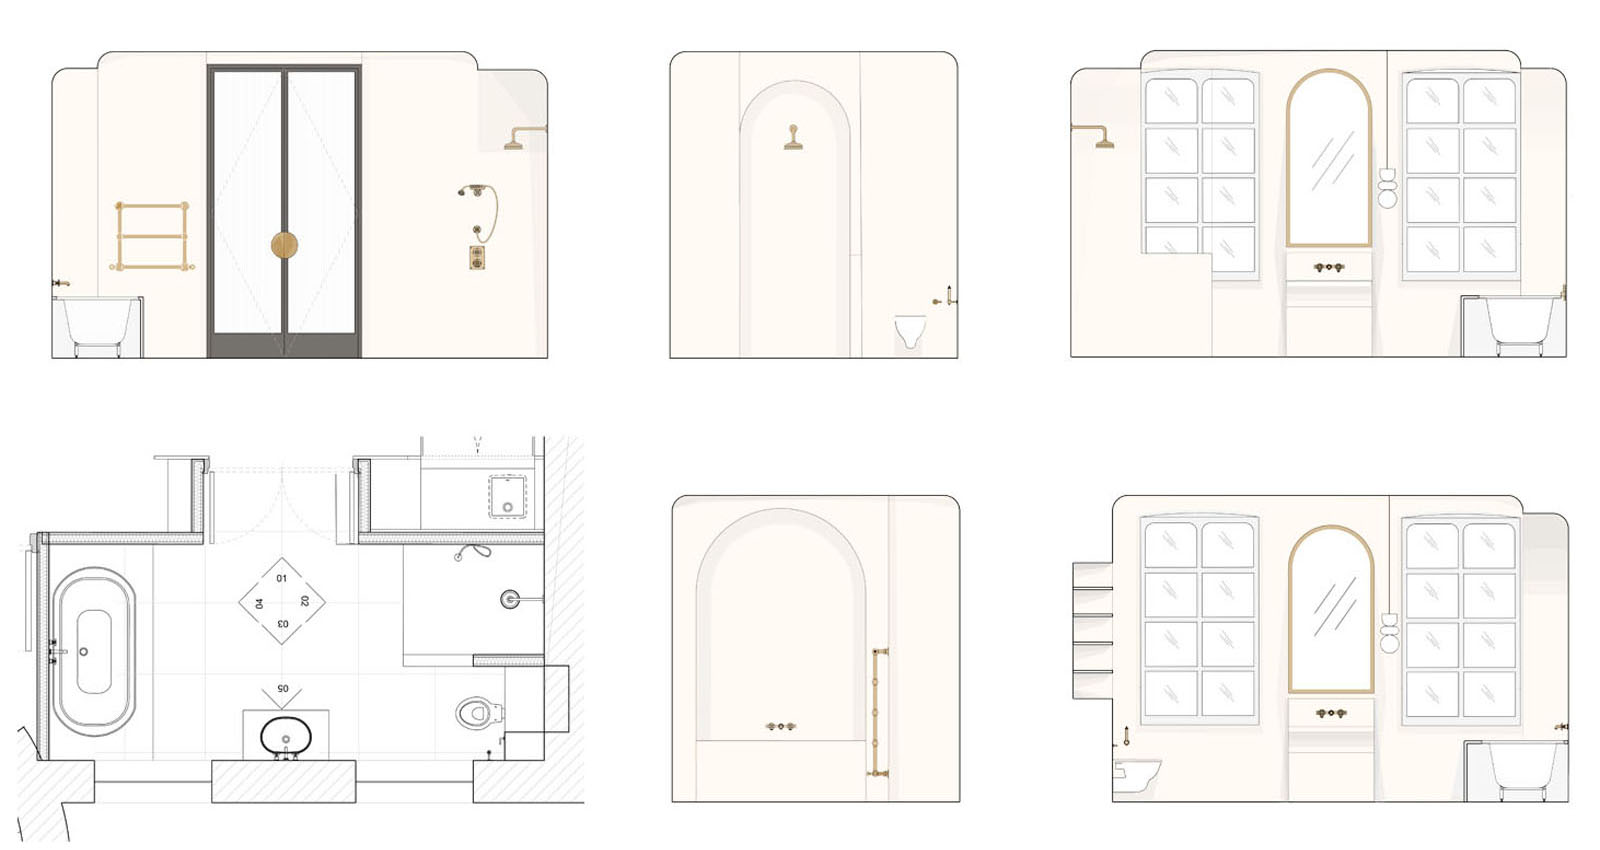 Chateau Refurbishment, proposed master bathroom